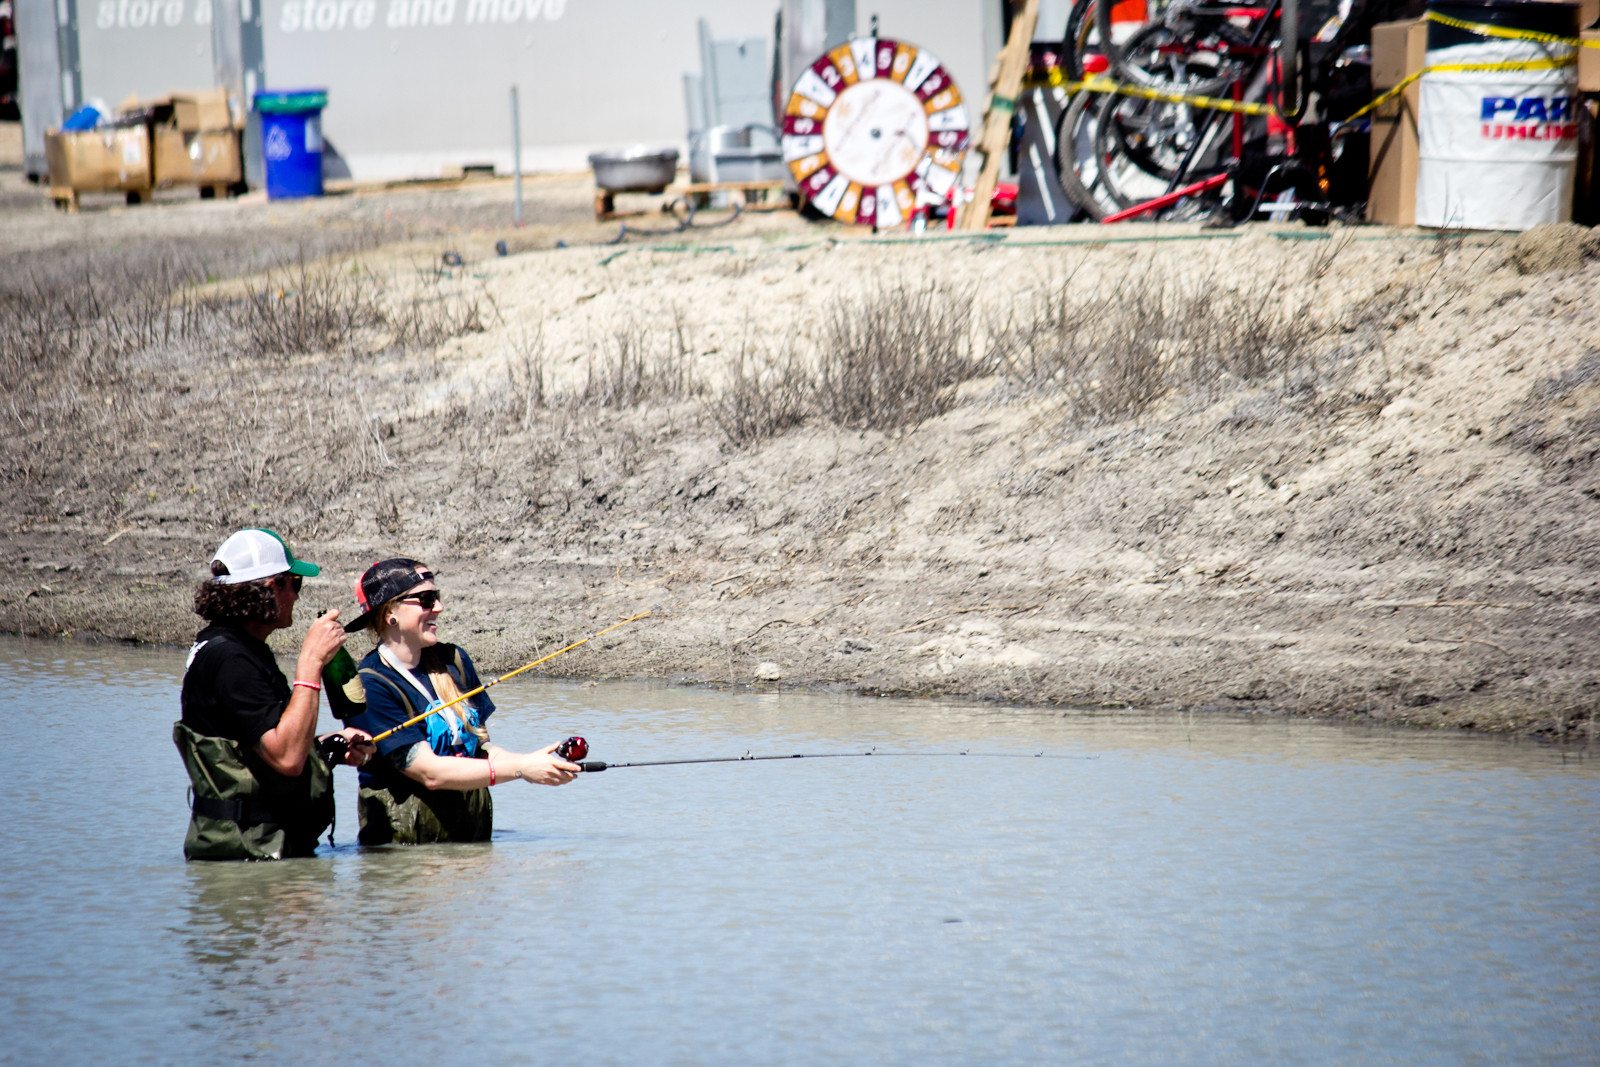 Pond Fishing - Sea Otter Classic - 2014 Sea Otter Classic Pit Bits - 3rd Edition - Mountain Biking Pictures - Vital MTB